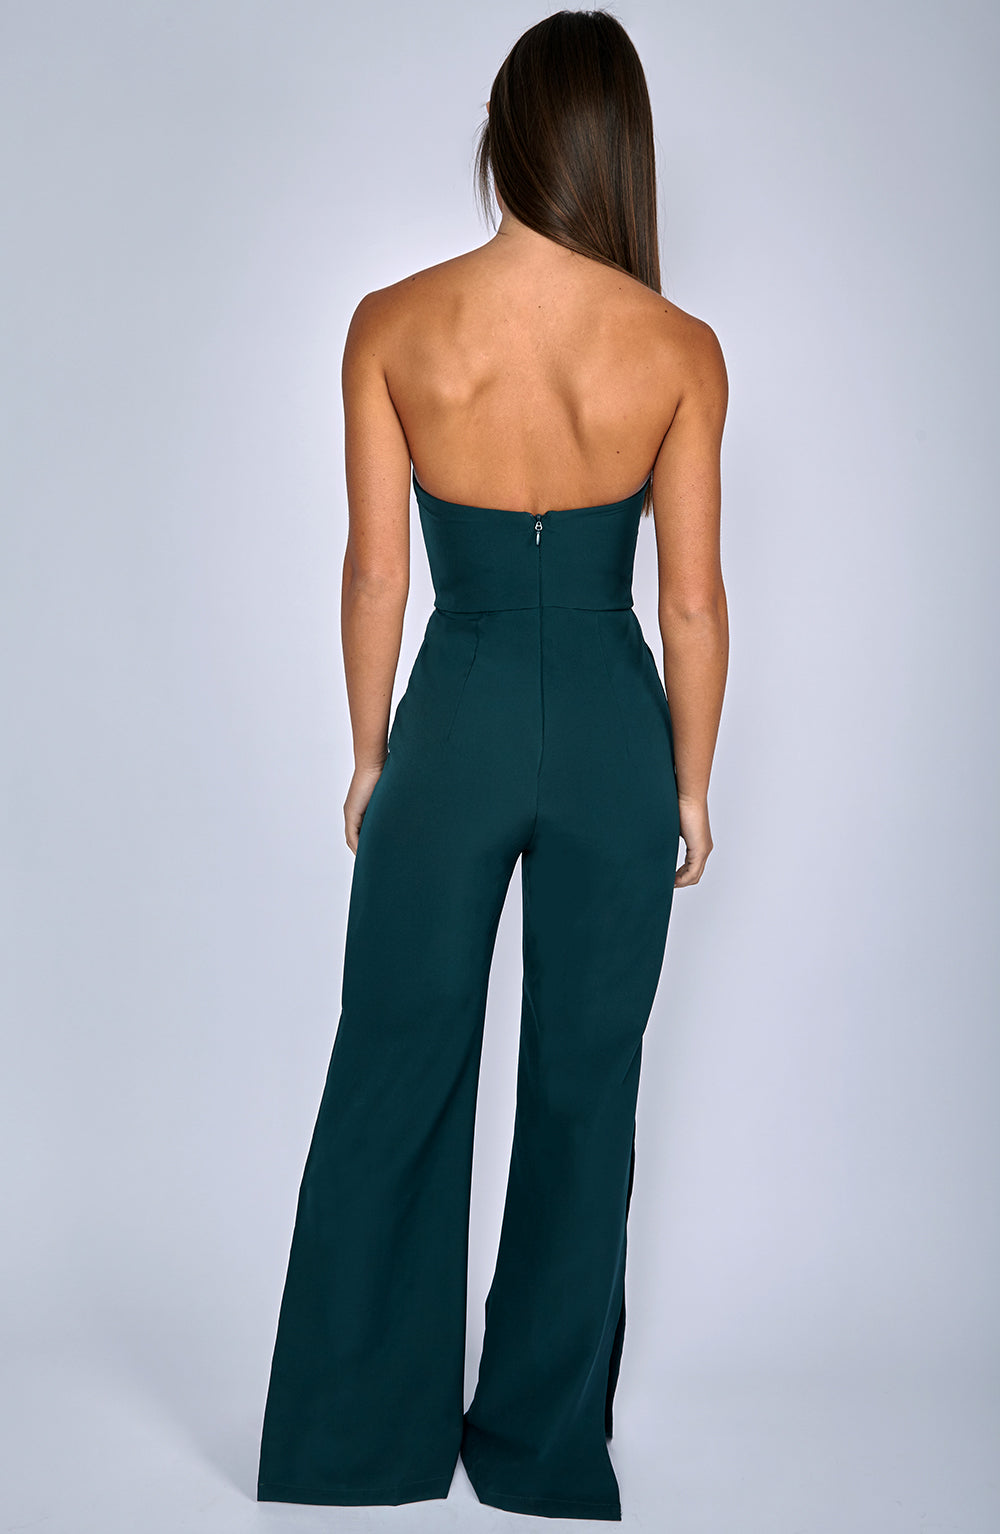 Rebel Heart Jumpsuit - Emerald